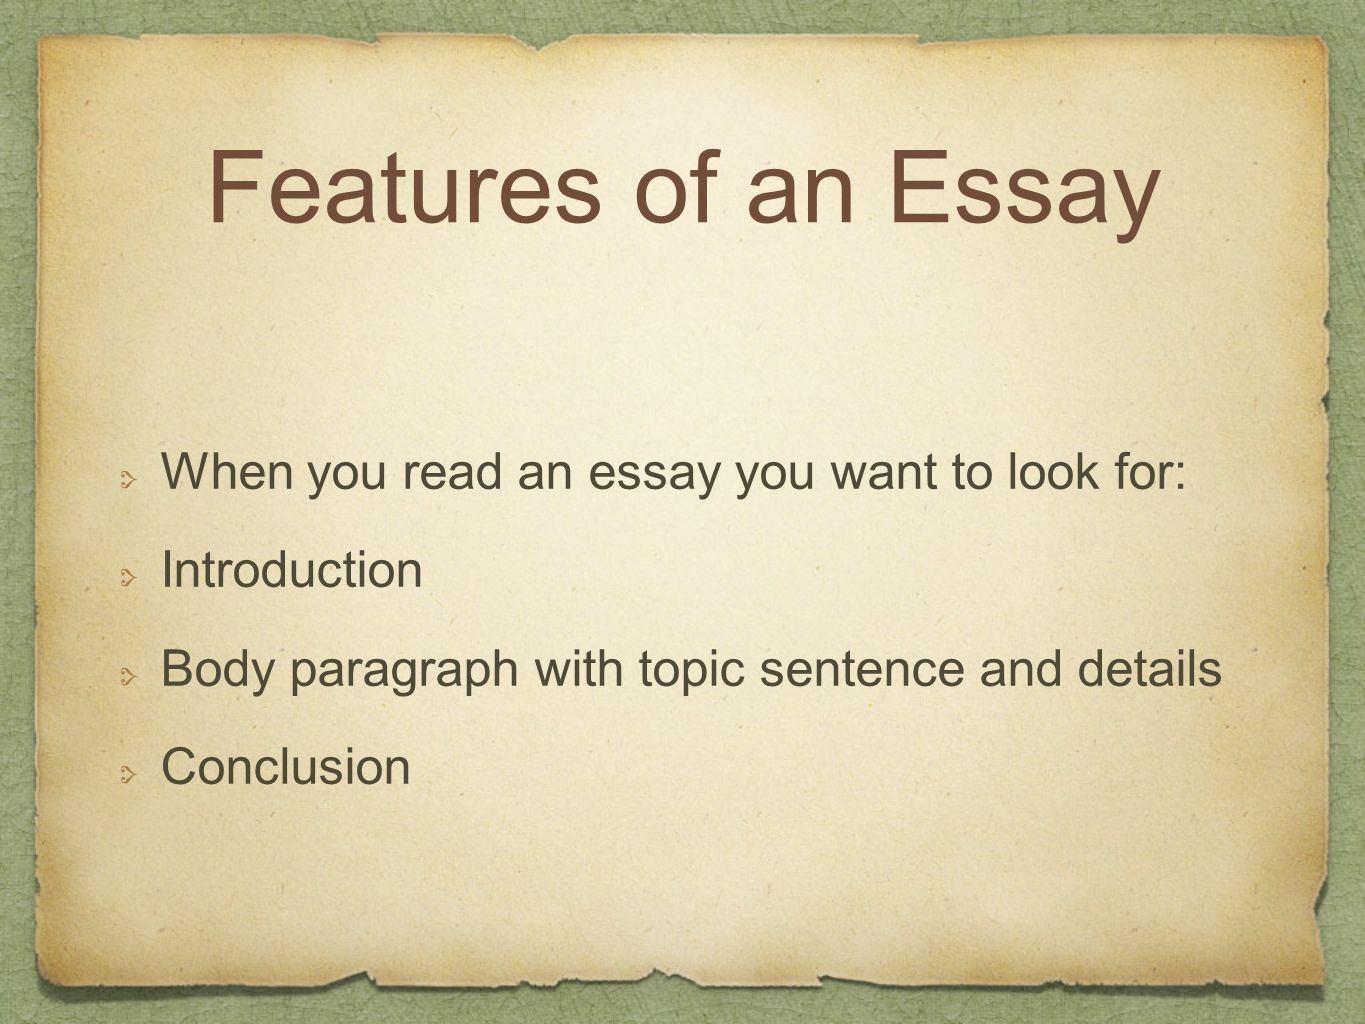 Features of an Essay When you read an essay you want to look for: